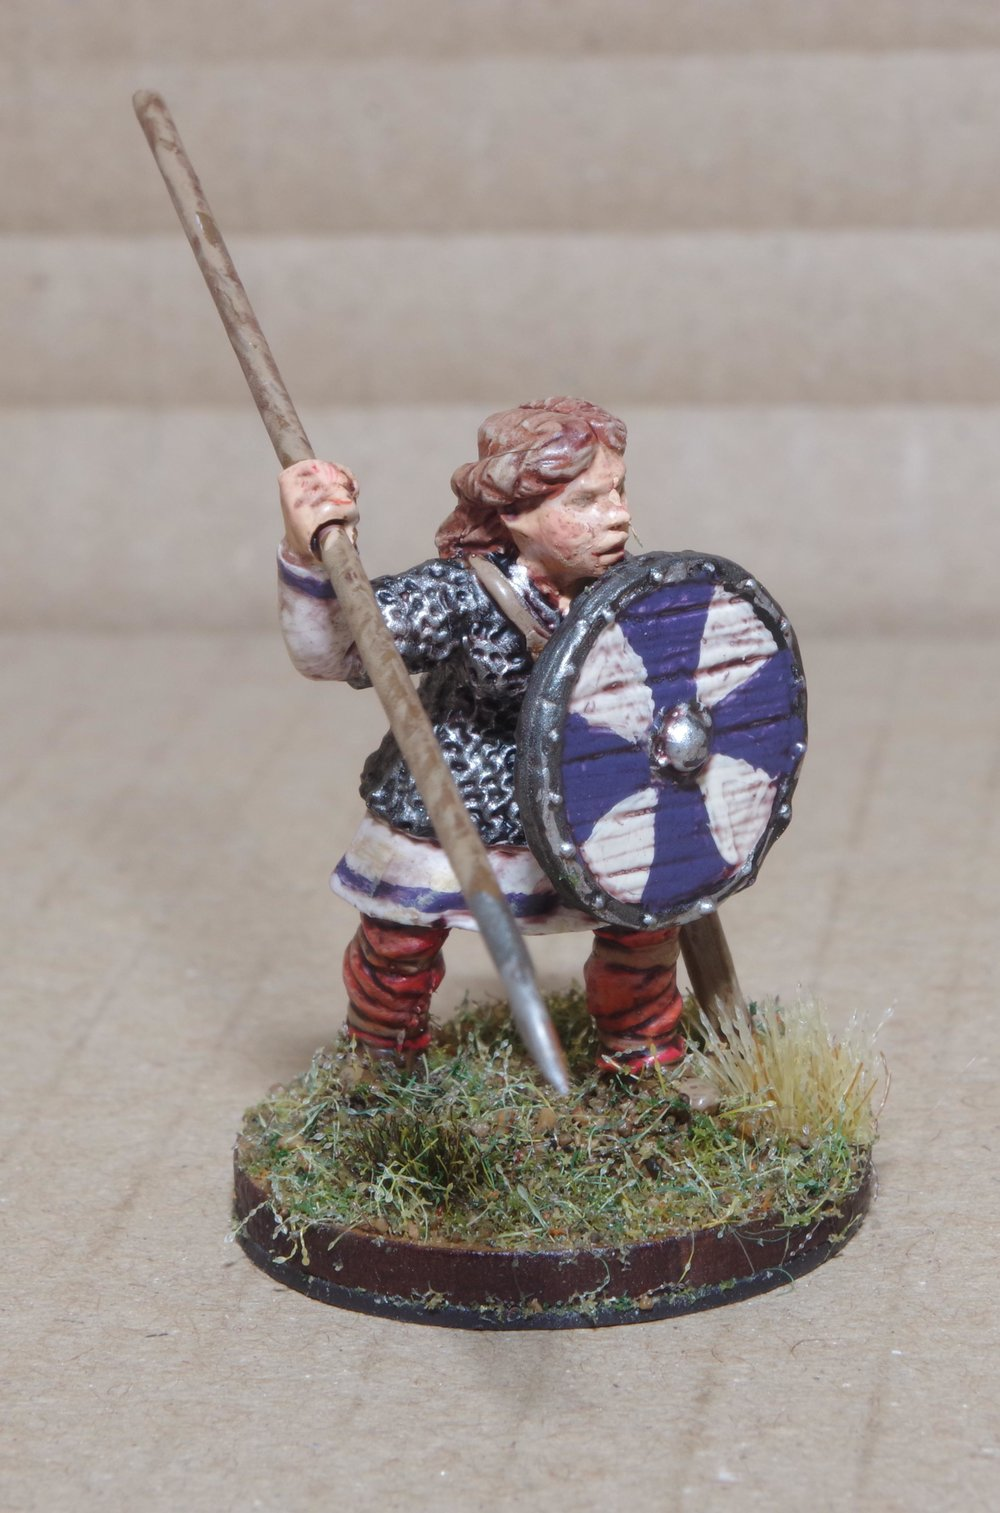 A shieldmaiden from Carole